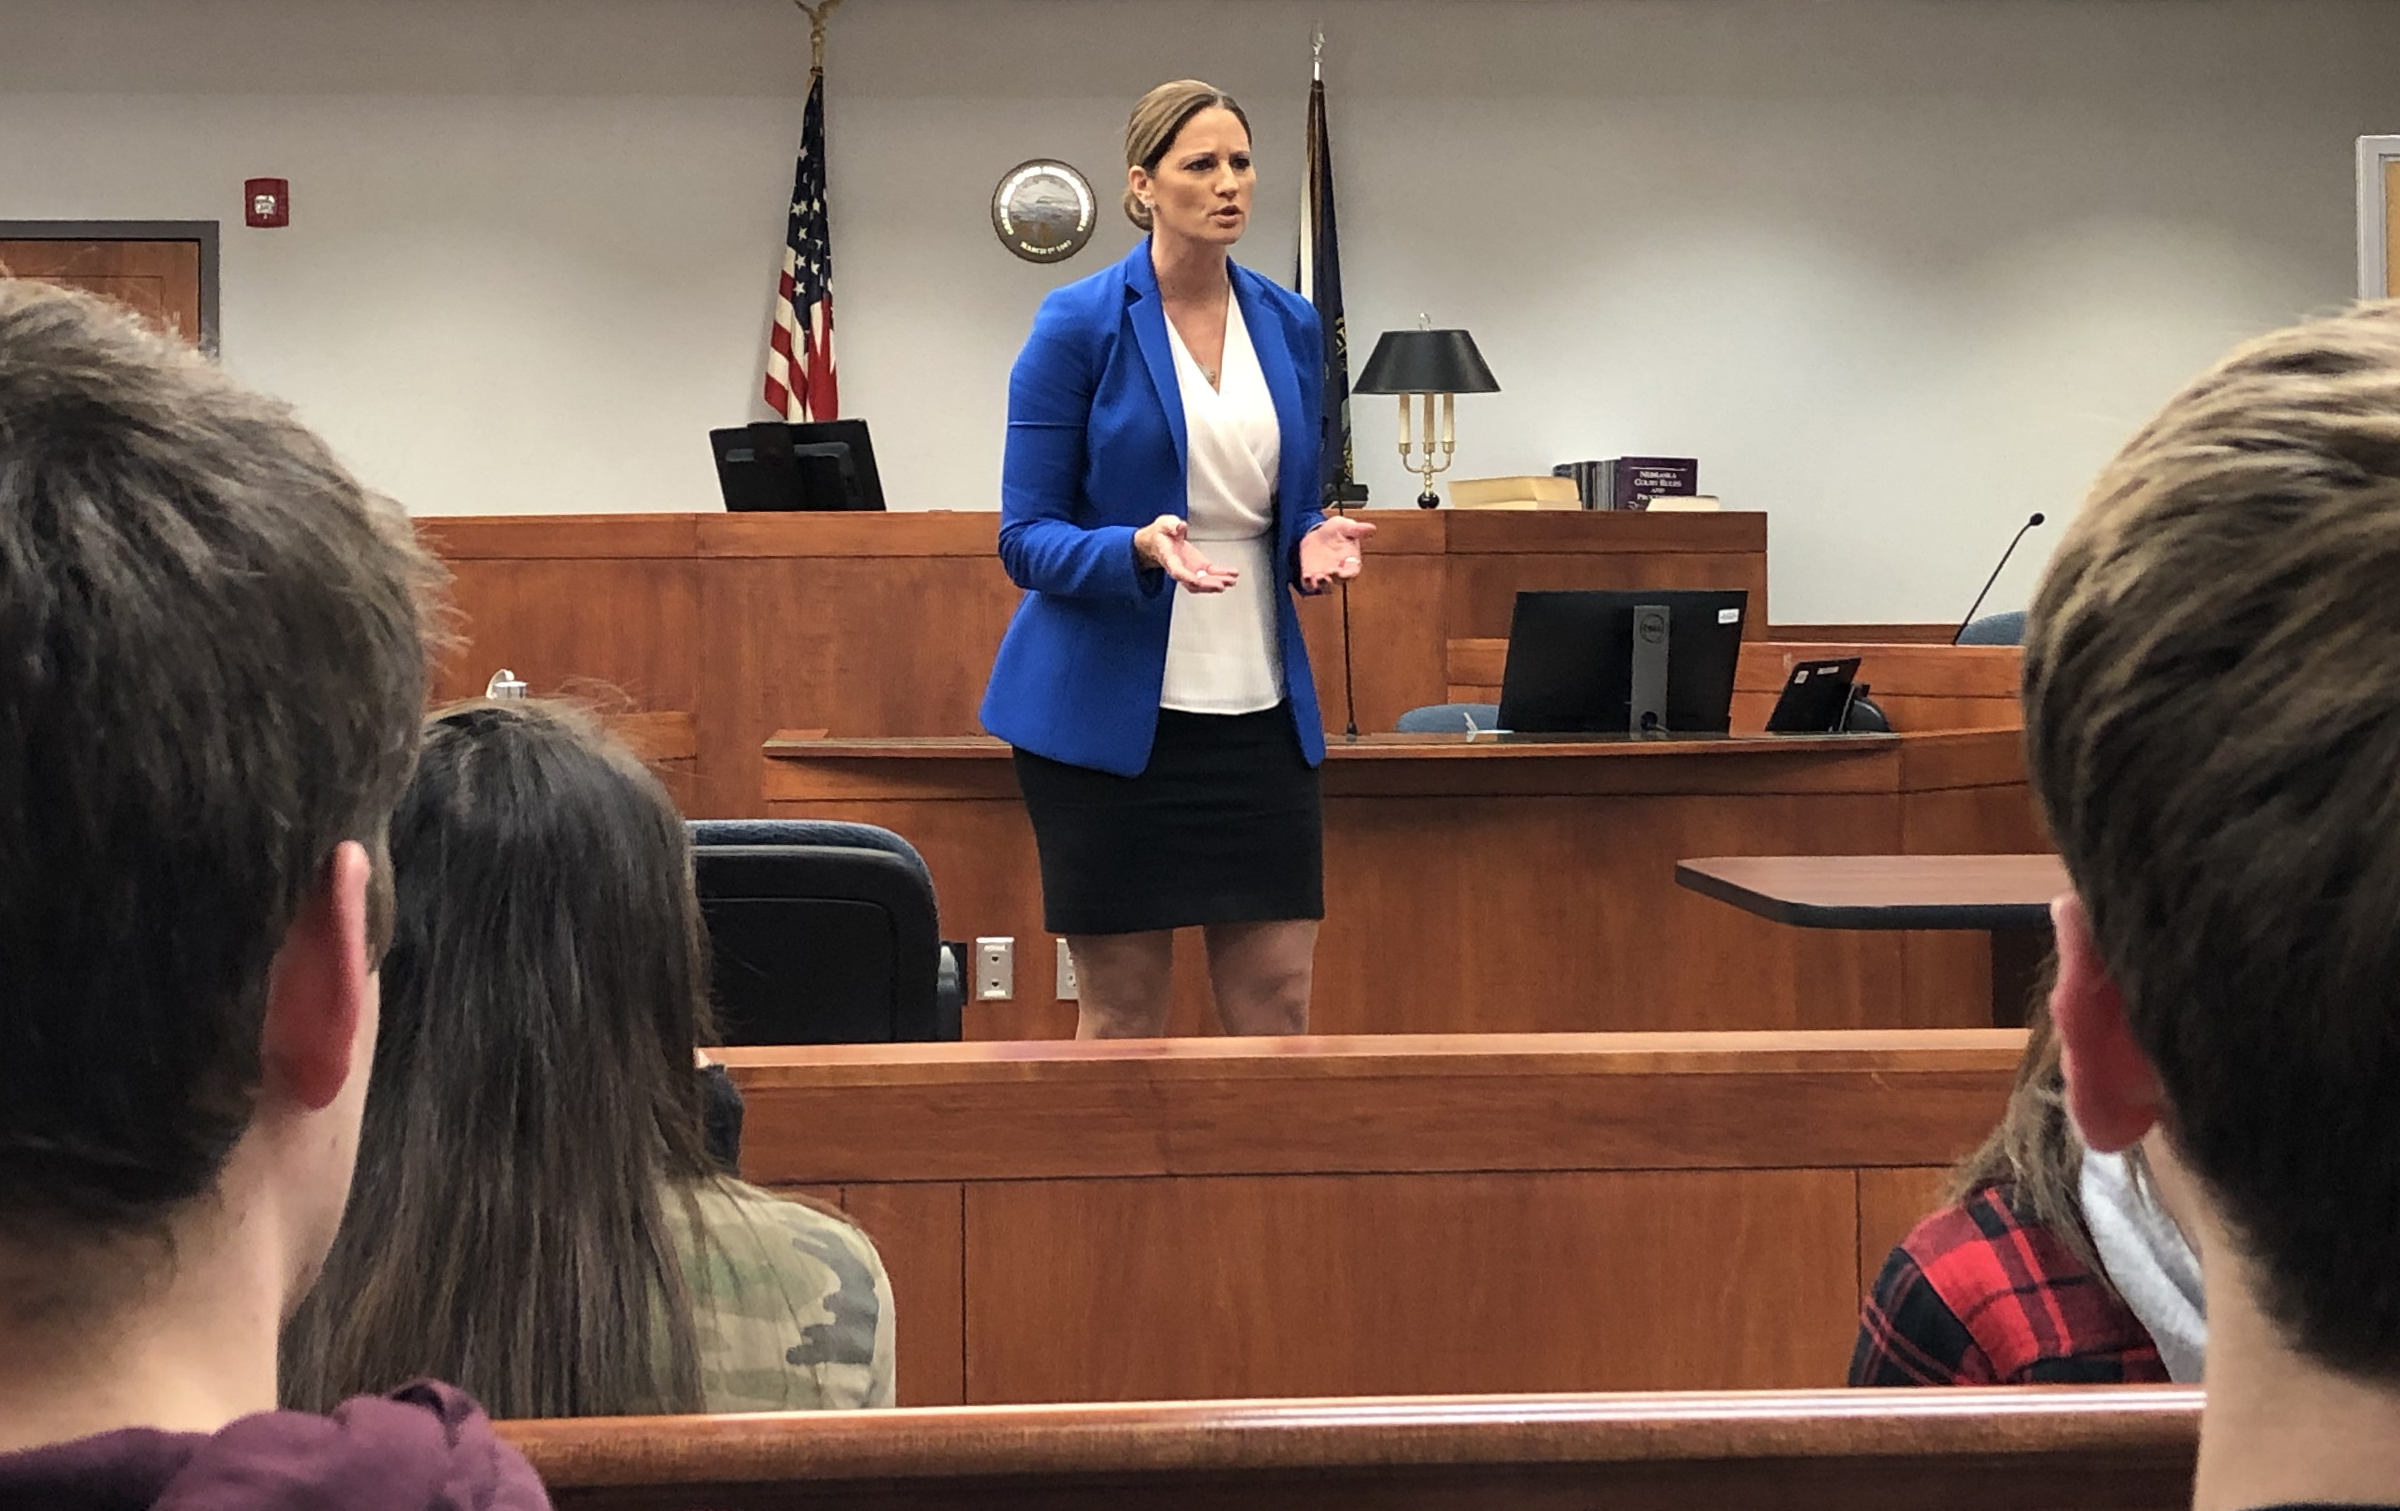 Attorney Mandy M. Gruhlkey speaks with teens in the 2019 Law Academy about her personal experience as a public defender and deputy county attorney at the Sarpy County Courthouse in Papillion, Nov. 7, 2019. (Scott Stewart/Daily Record)